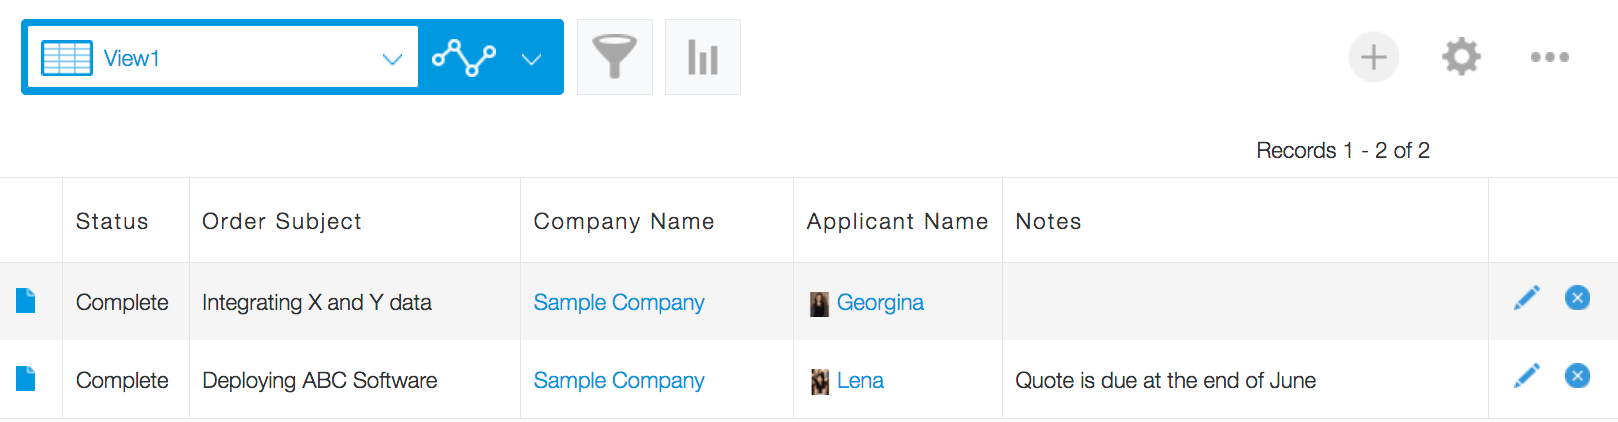 Persol Career Sample Order Placement App List View